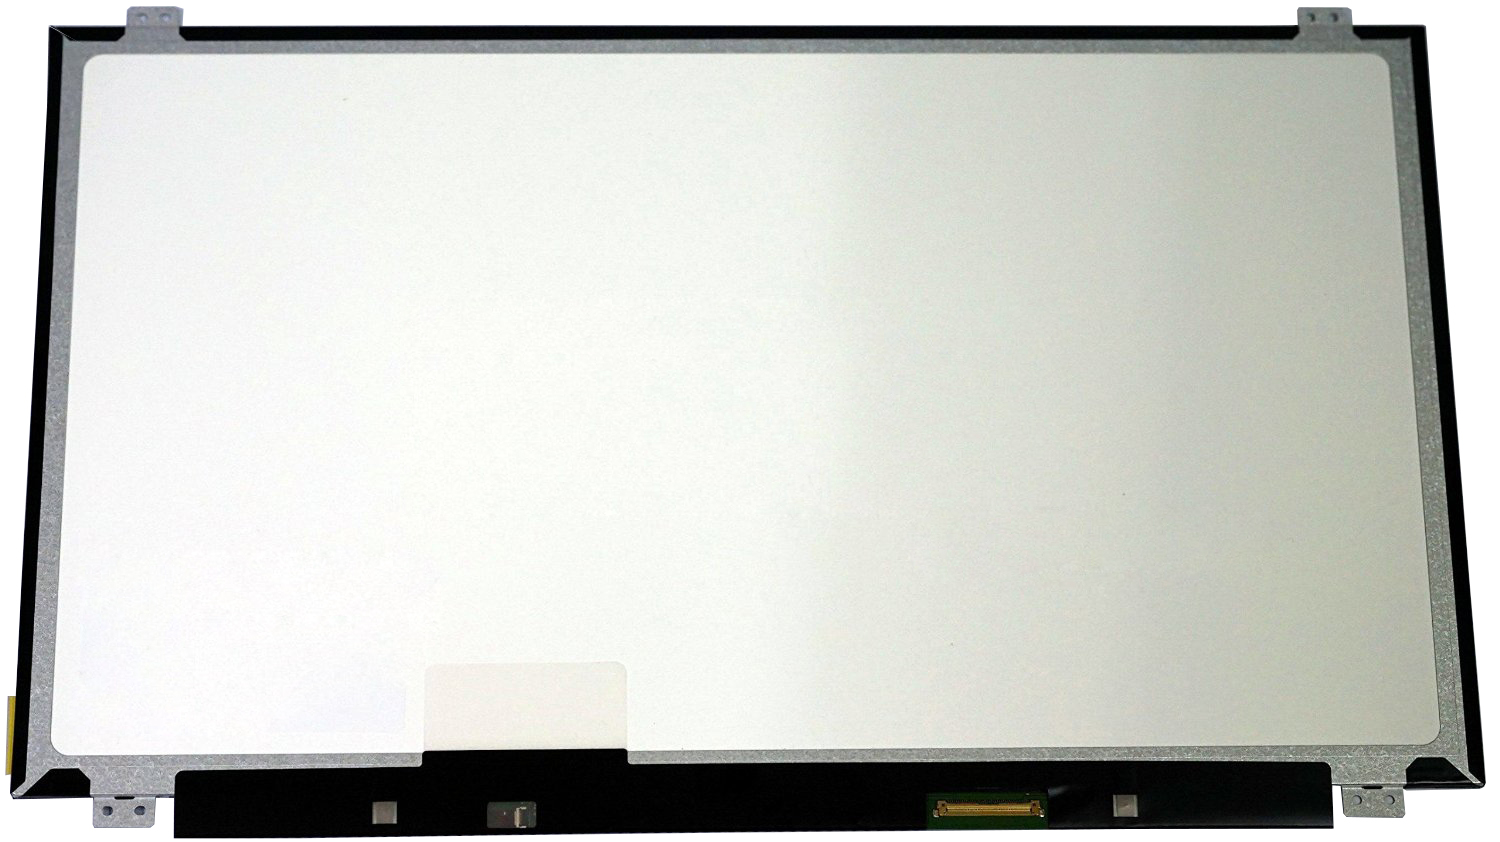 QuYing Laptop LCD Screen for Acer ASPIRE V5-572P V5-573G V5-571PG V7-581 V5-552P V5-573P E5-532T SERIES(15.6 1366x768 30pin) new for acer aspire v5 531 v5 571 v5 571g lcd lvds cable va51 50 4vm06 002 free shipping